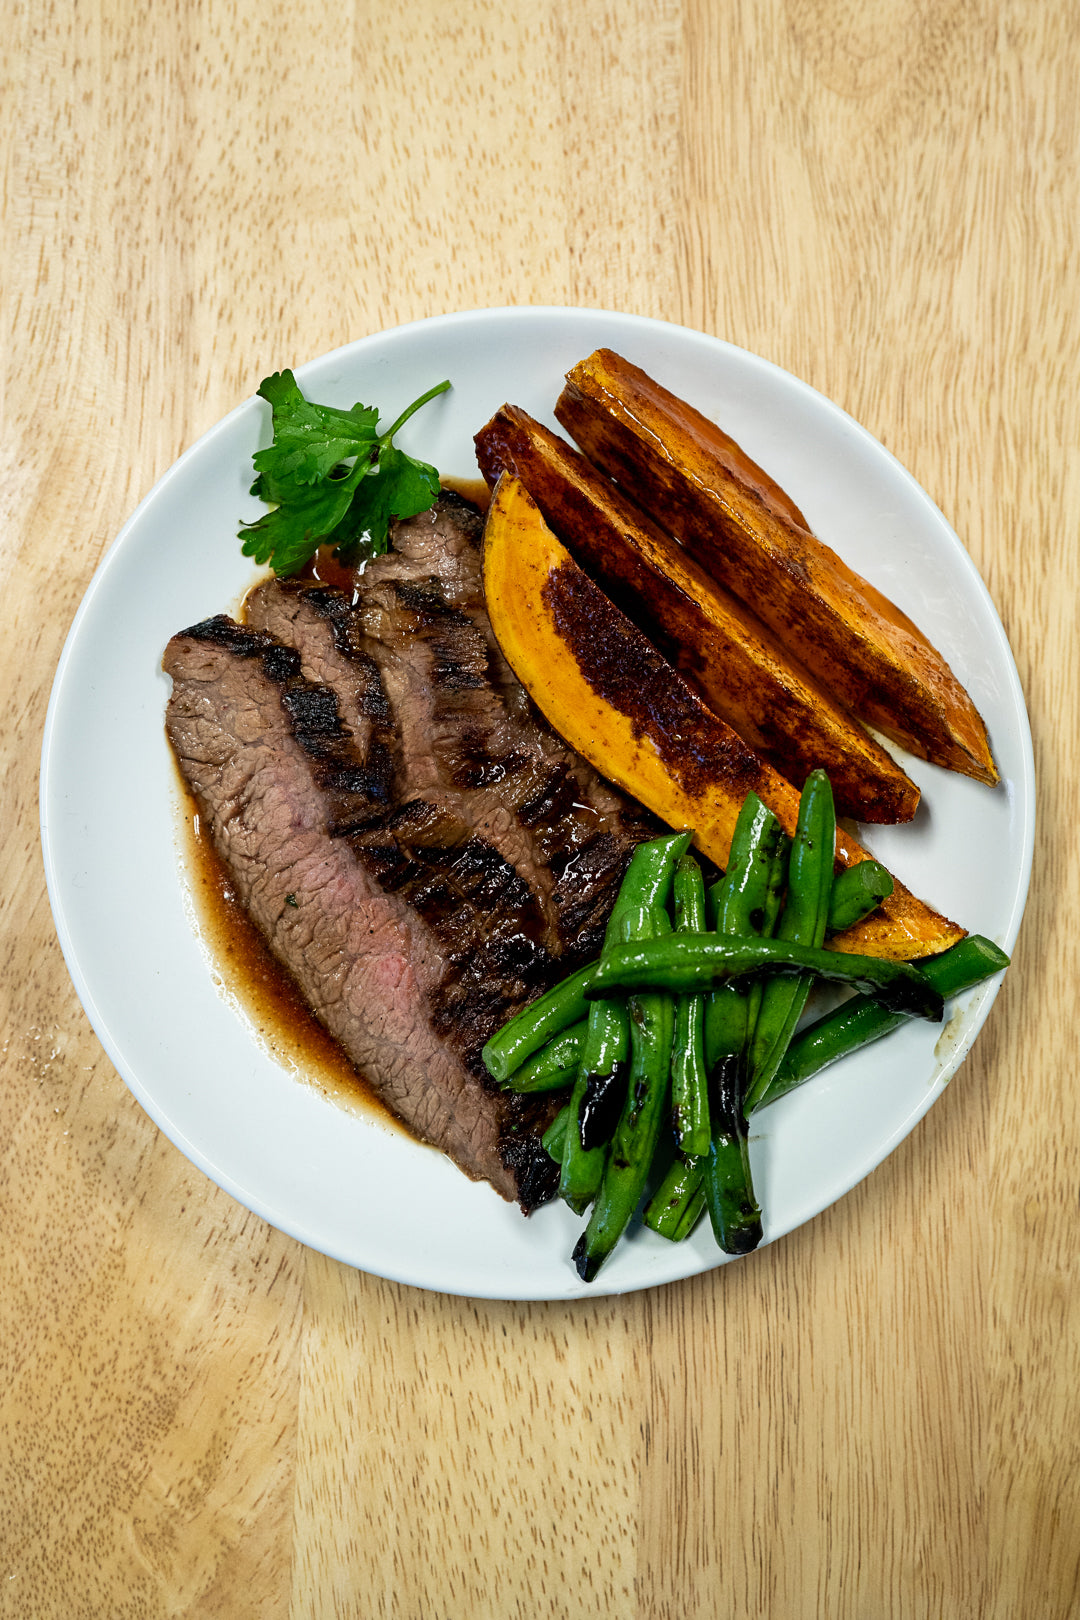 Thyme and Rosemary Steak